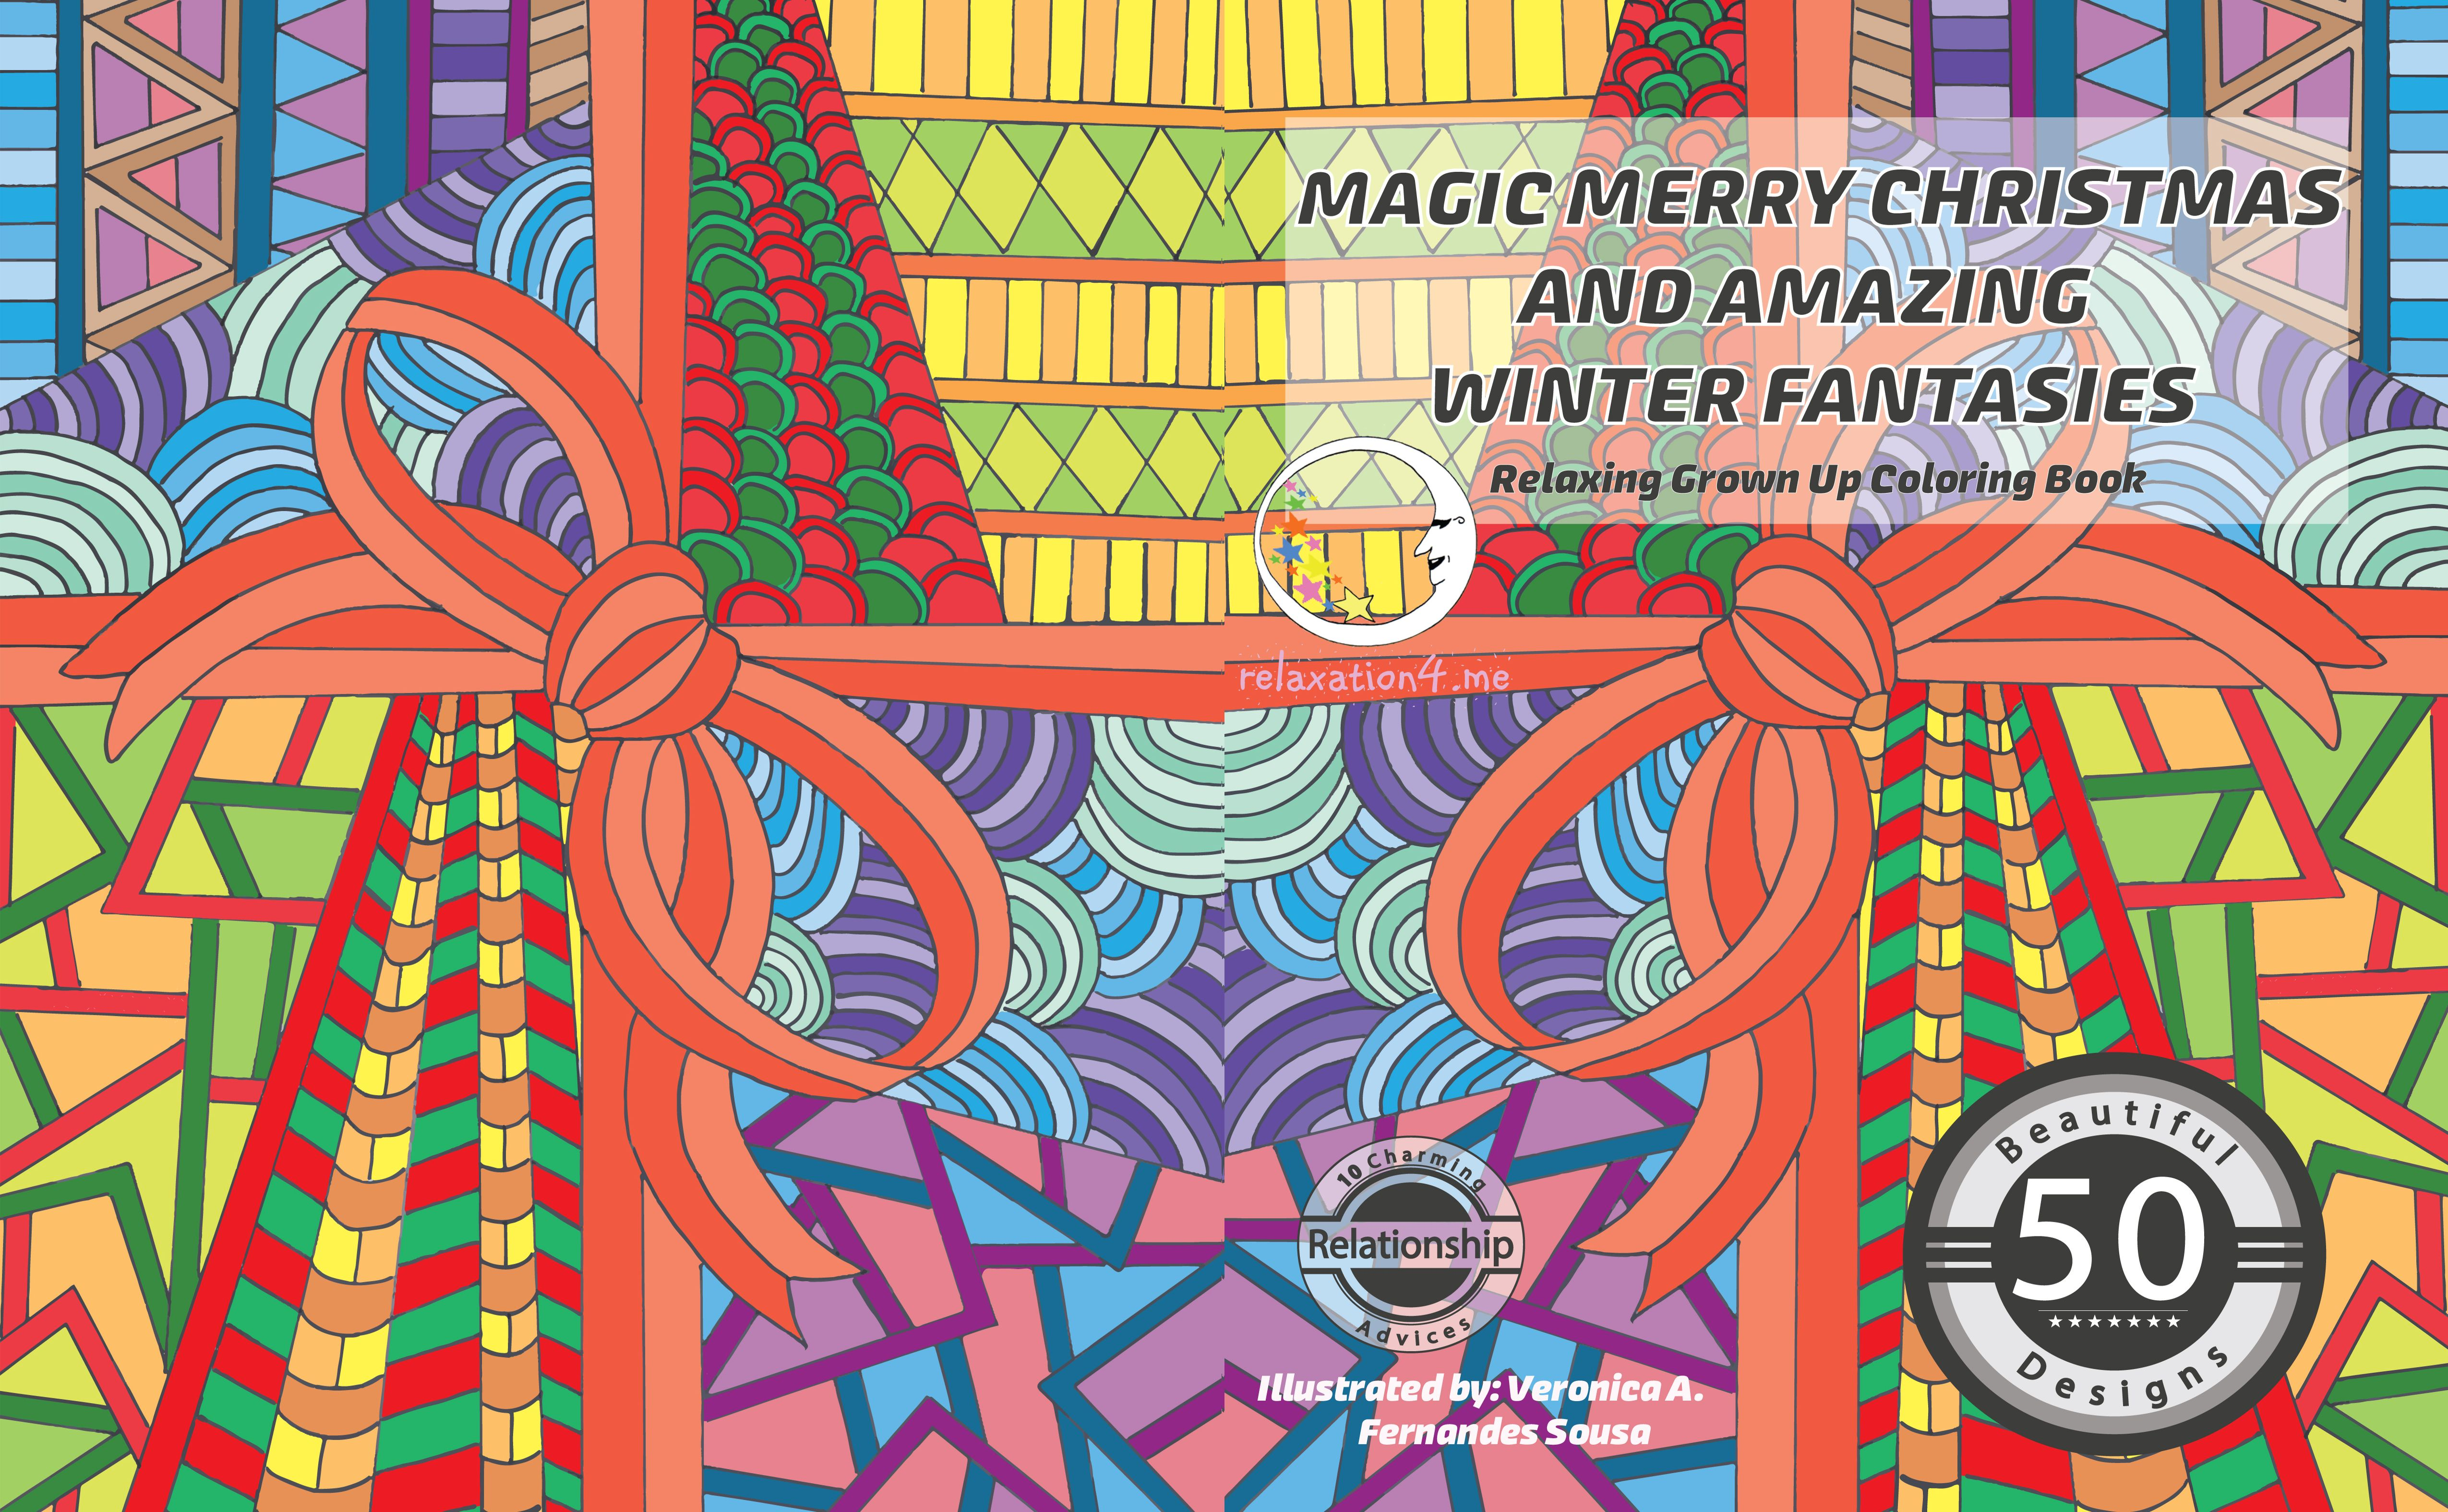 Pin On Free Anti Stress Adult Coloring Book Printables Magic Merry Christmas And Amazing Winter Fantasies Diy Art Therapy